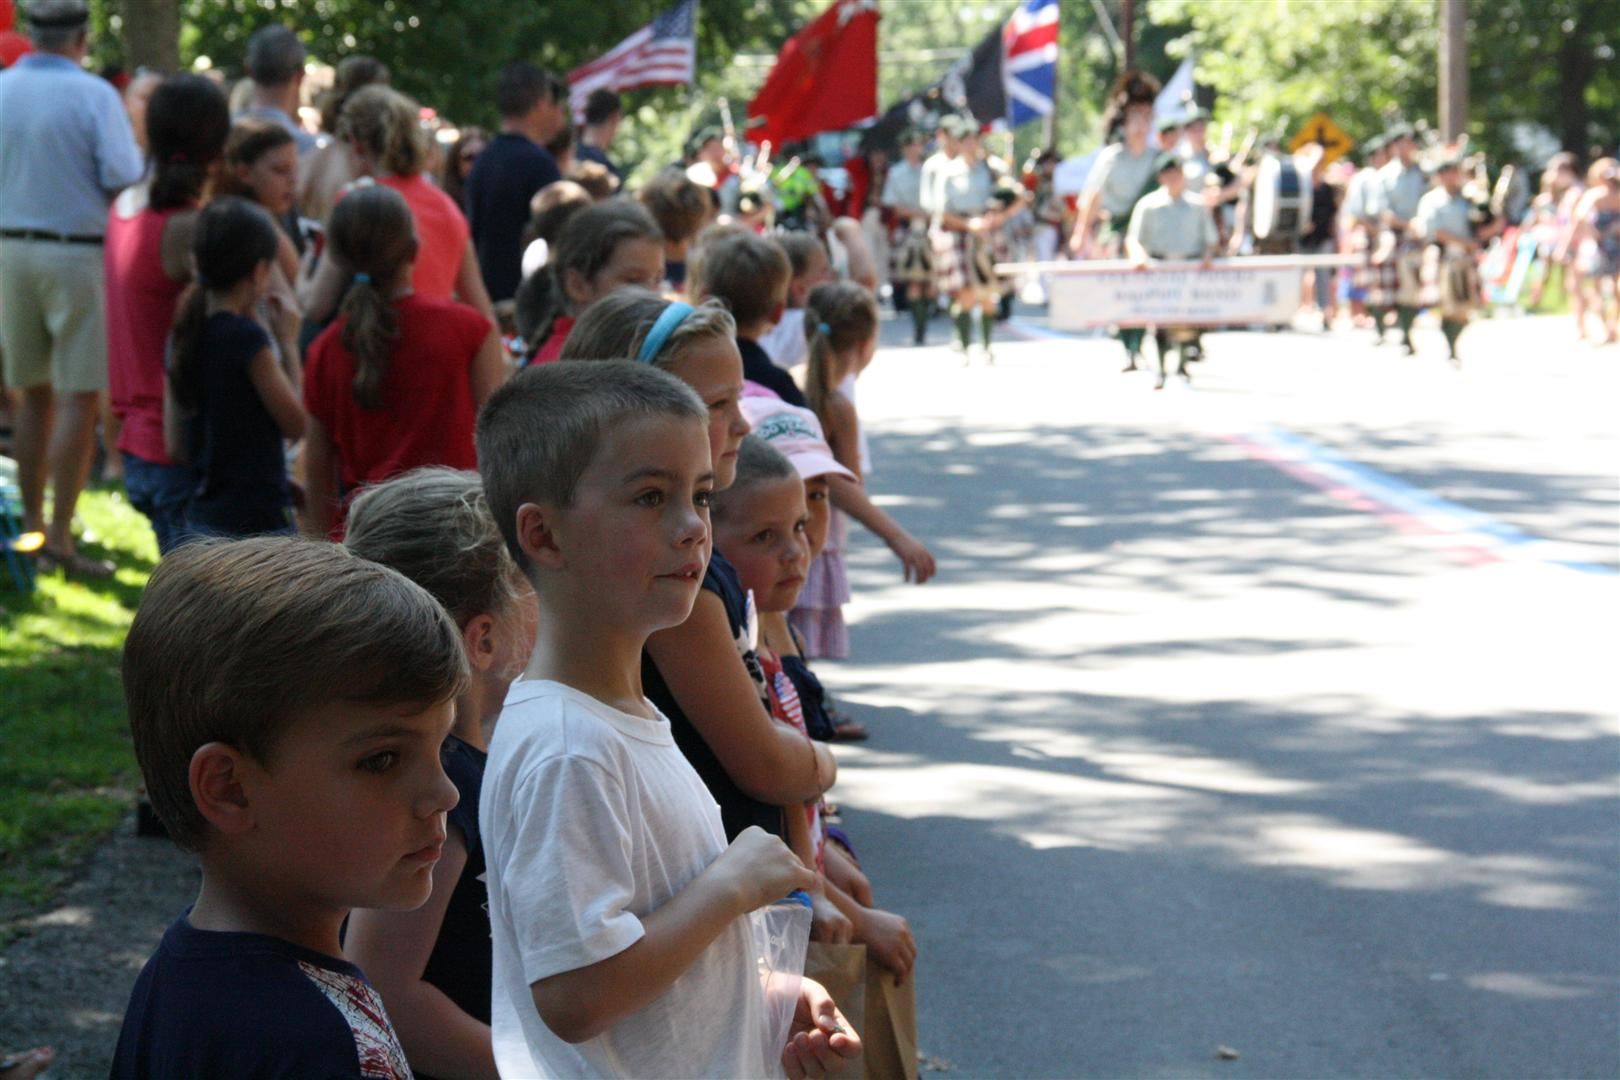 Hingham Children Watching the Parade Processions